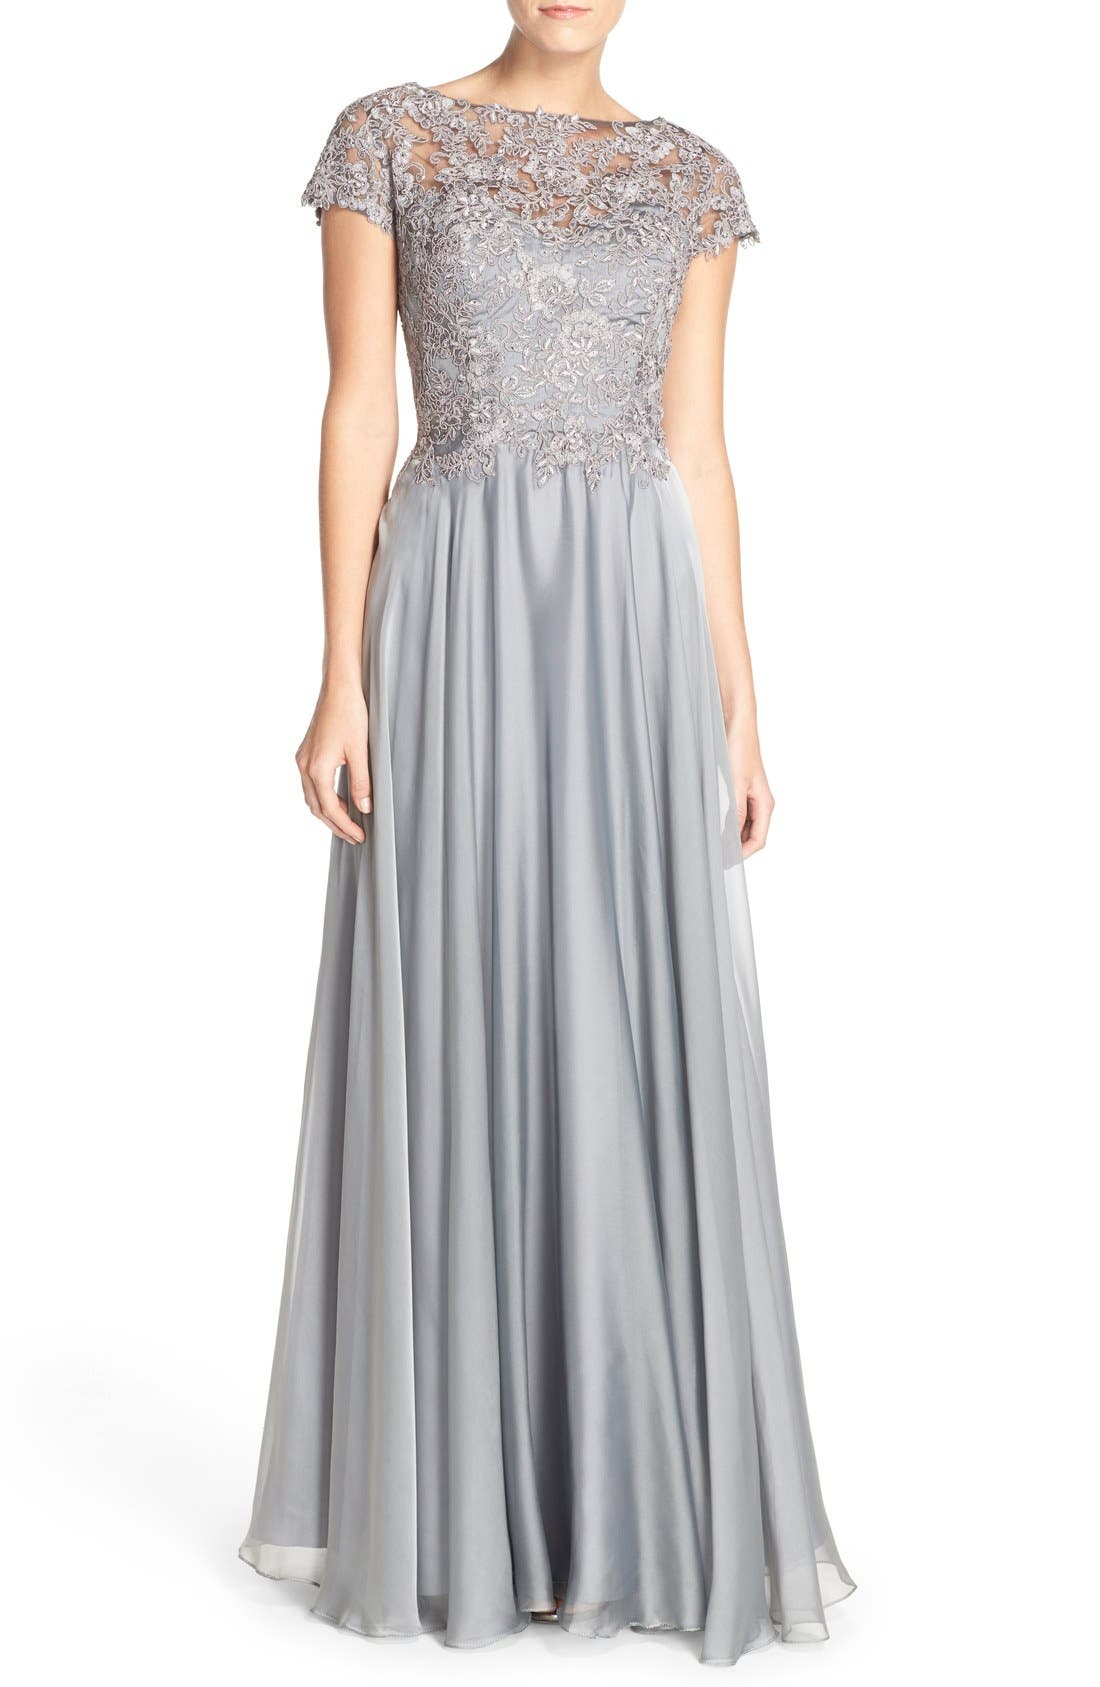 1940s Dresses | 40s Dress, Swing Dress Womens La Femme Embellished Lace  Satin Ballgown Size 20 similar to 20W-22W - Grey $450.00 AT vintagedancer.com